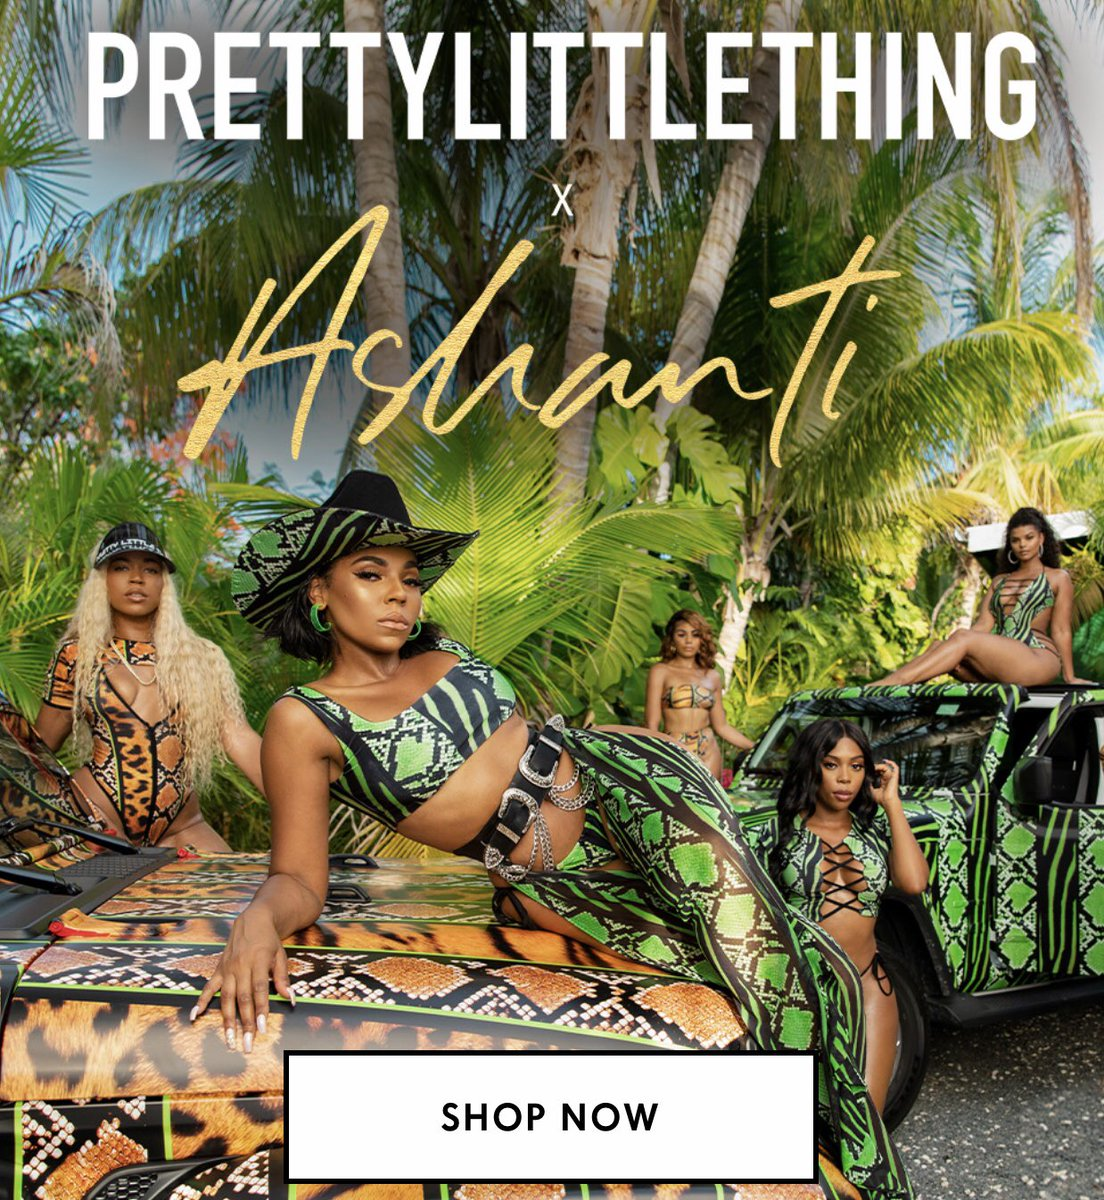 RT @dejapocahontas: I am here for this @OfficialPLT X @ashanti collaboration. They did that ???????????????????????????????? https://t.co/xh1bhetY3S